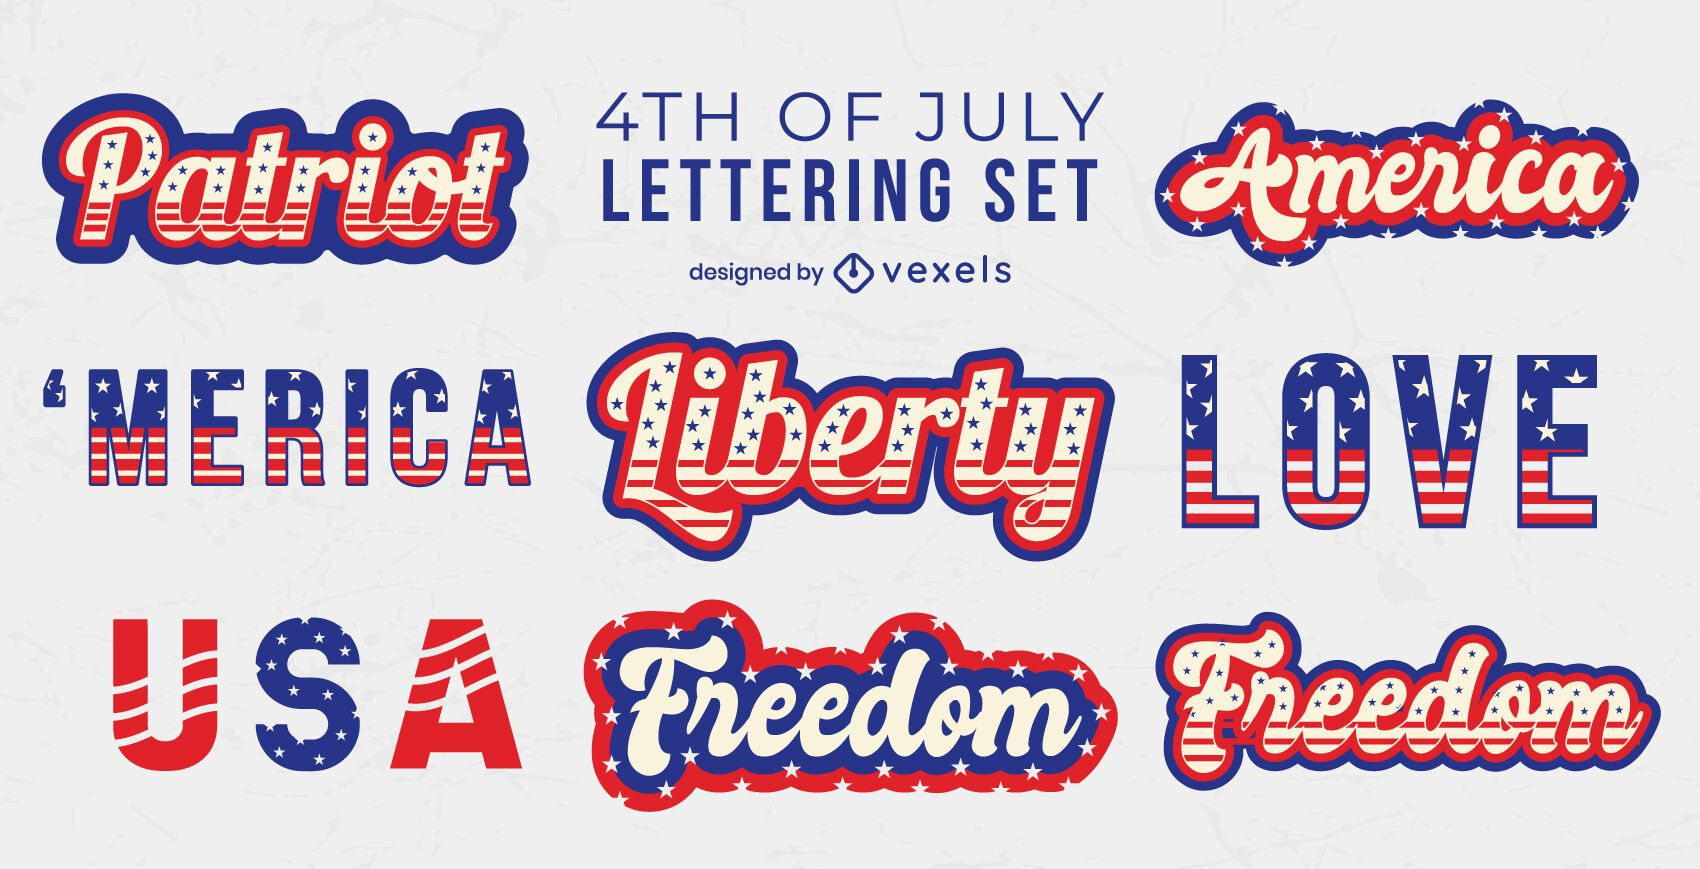 4th of july set of lettering elements